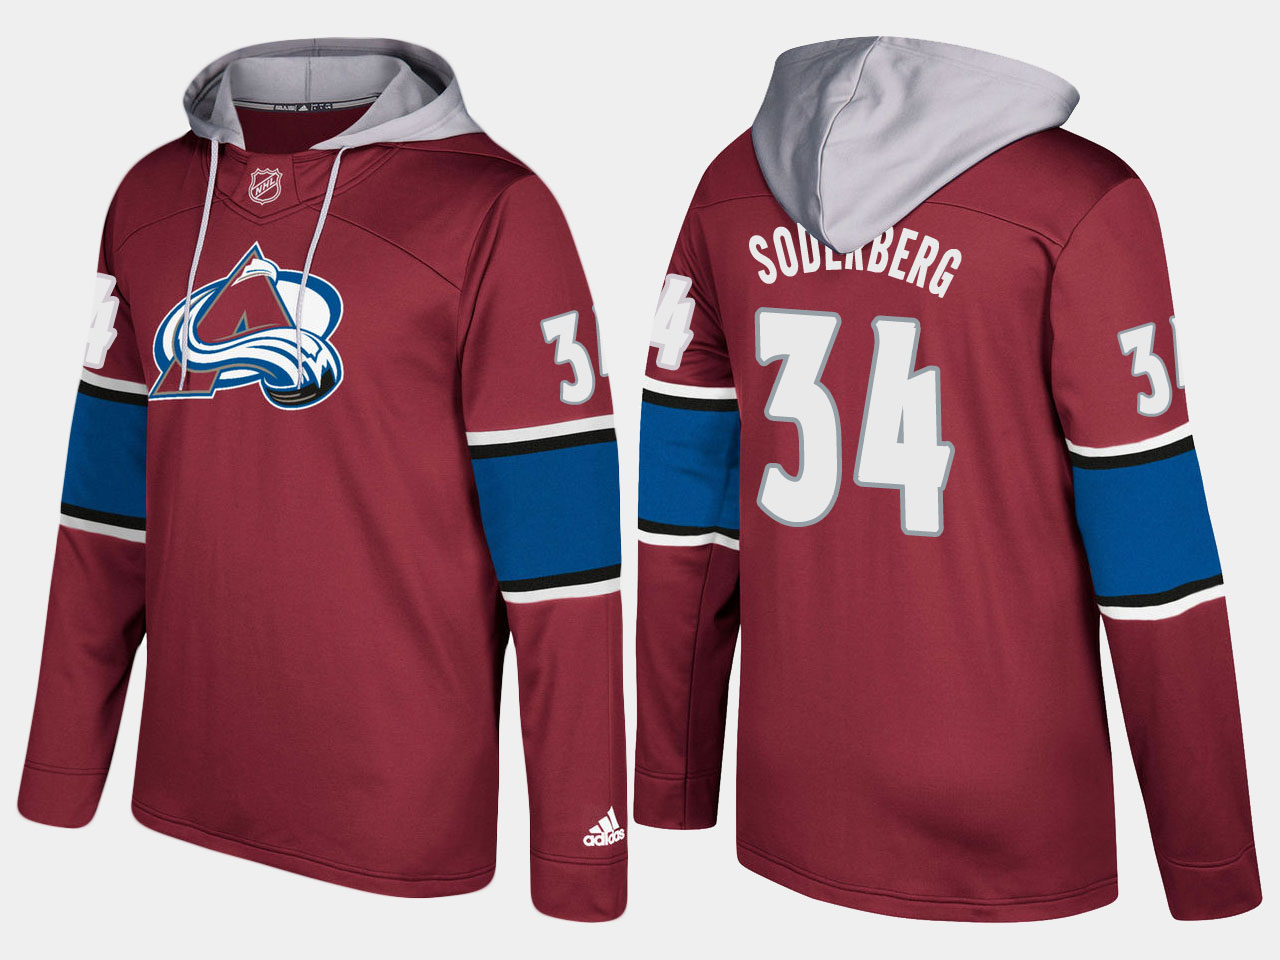 Men NHL Colorado avalanche 34 carl soderberg burgundy hoodie